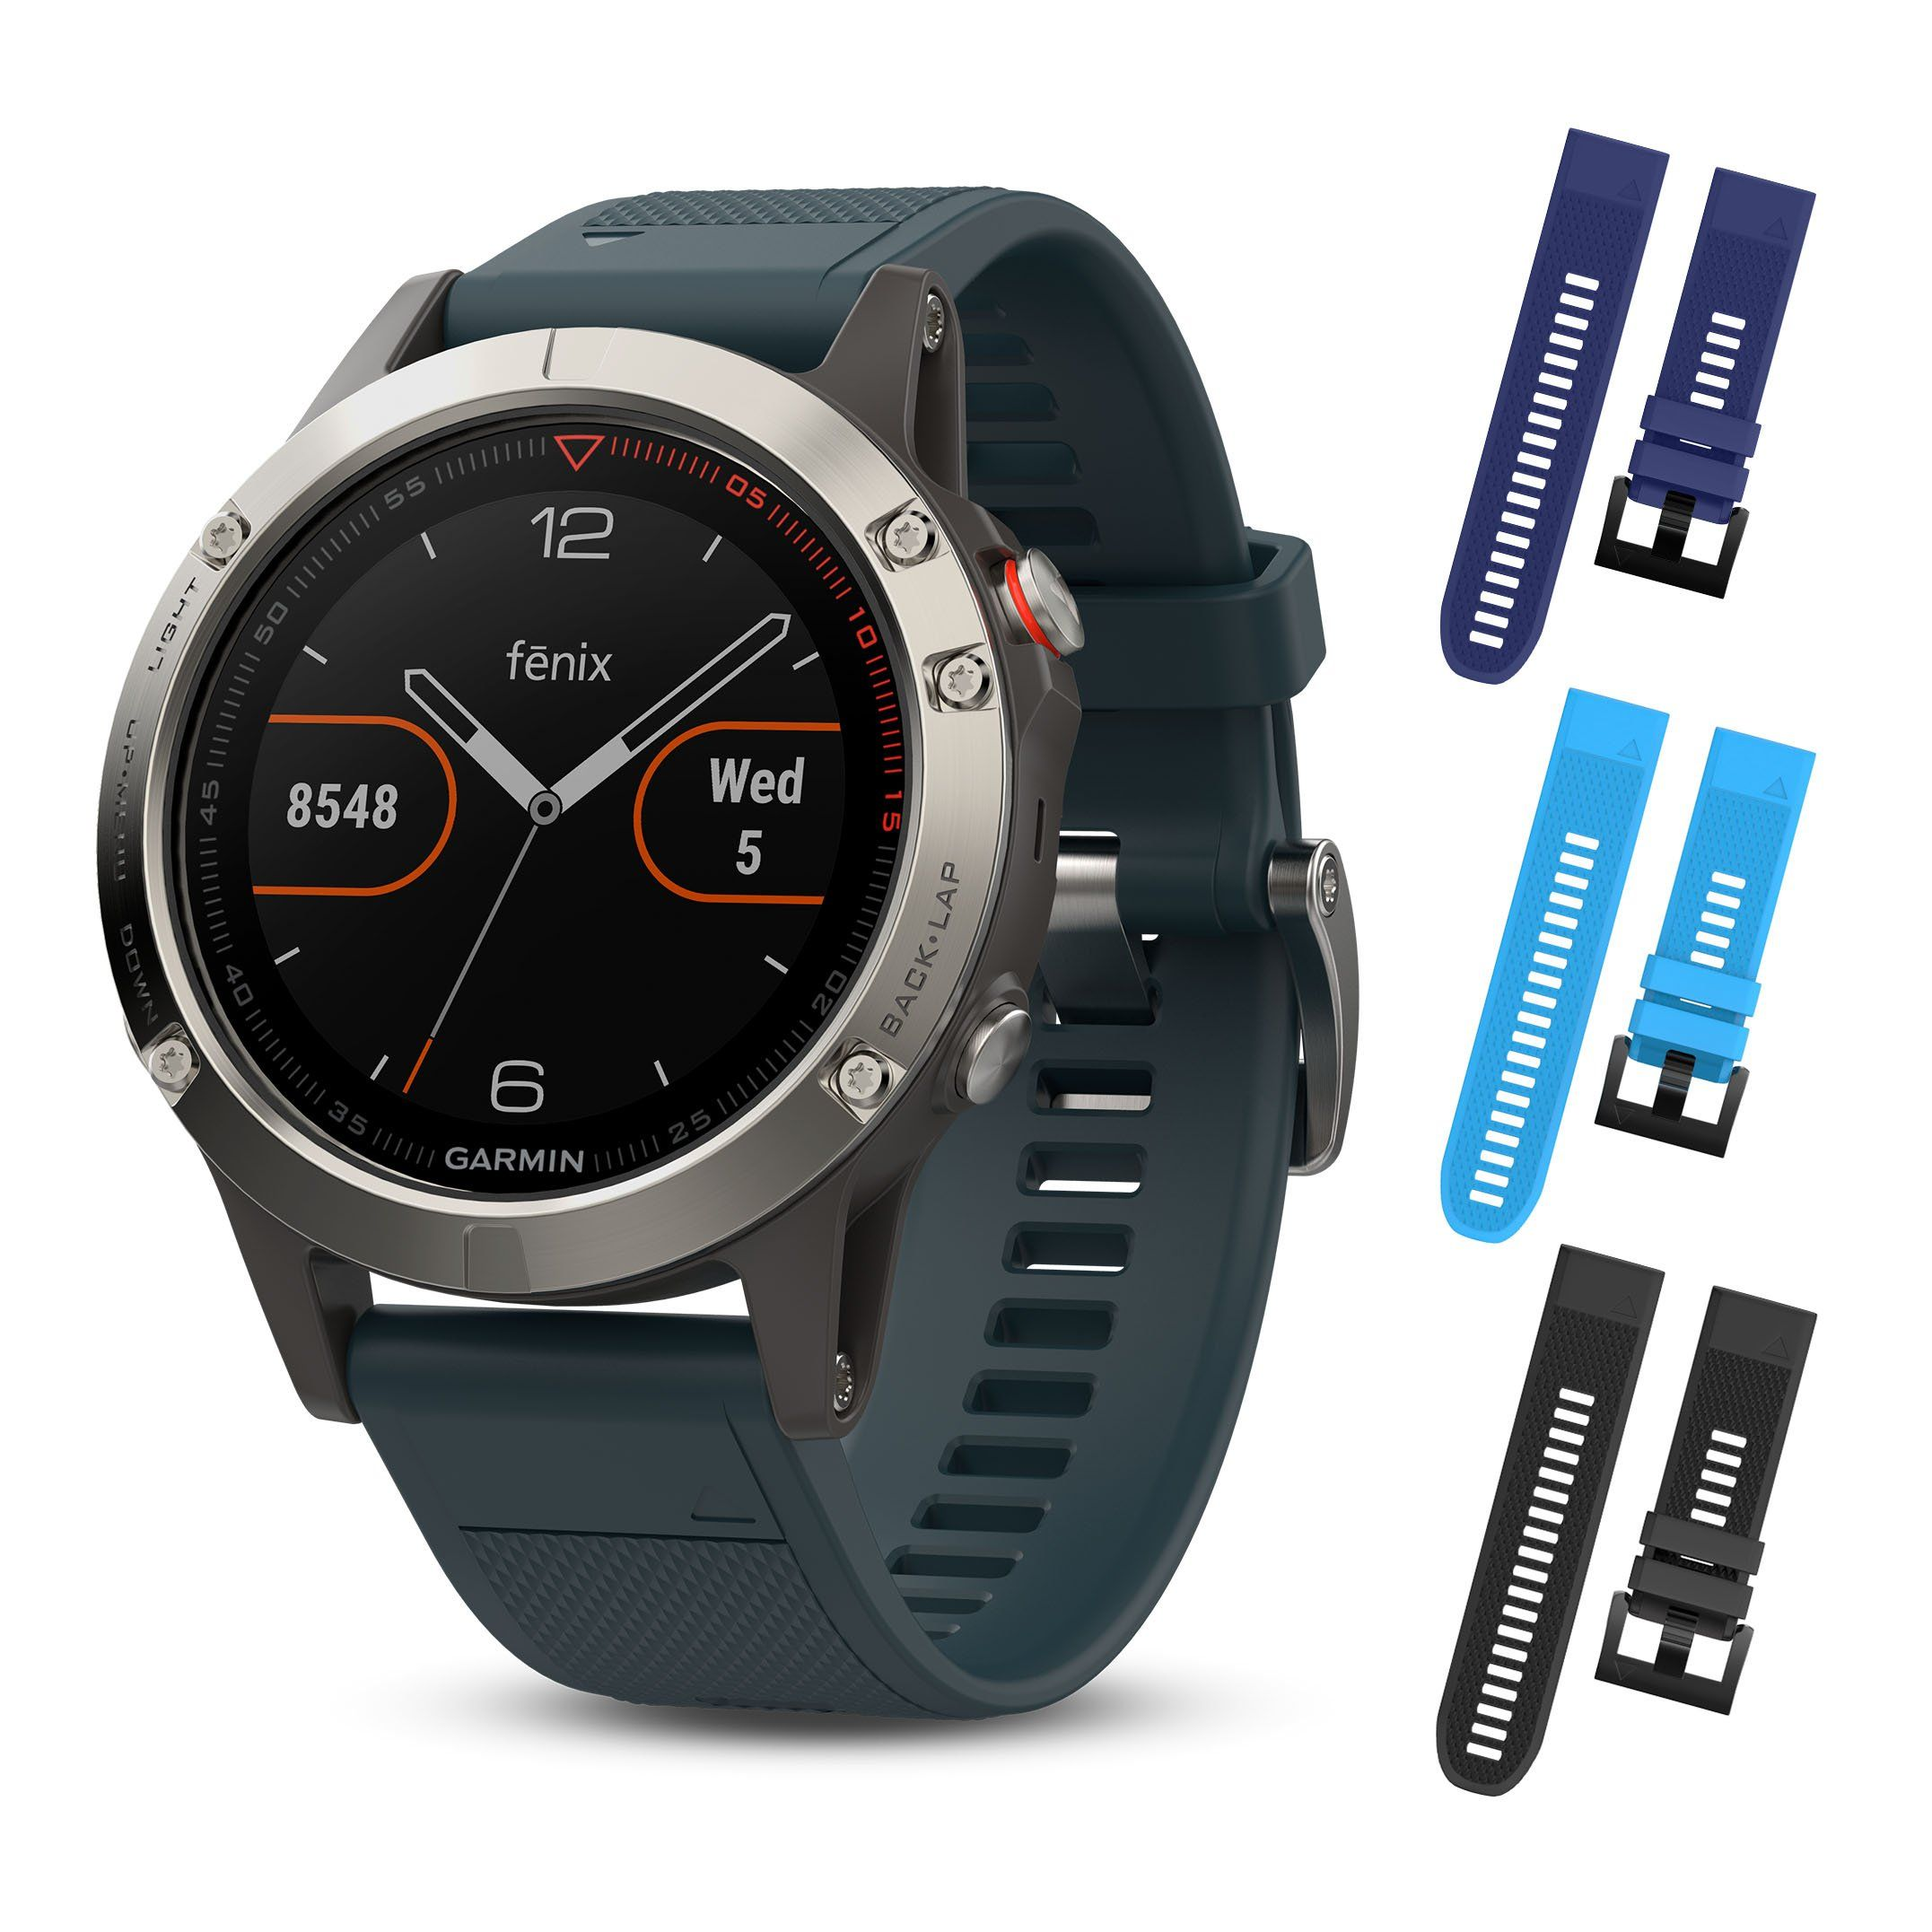 Garmin Fenix 5 Silver With Granite Blue Band 010 01688 01 And Three Additional Wearable4U Quick Release Silicone Watch Bands Bundle Black Sky Navy